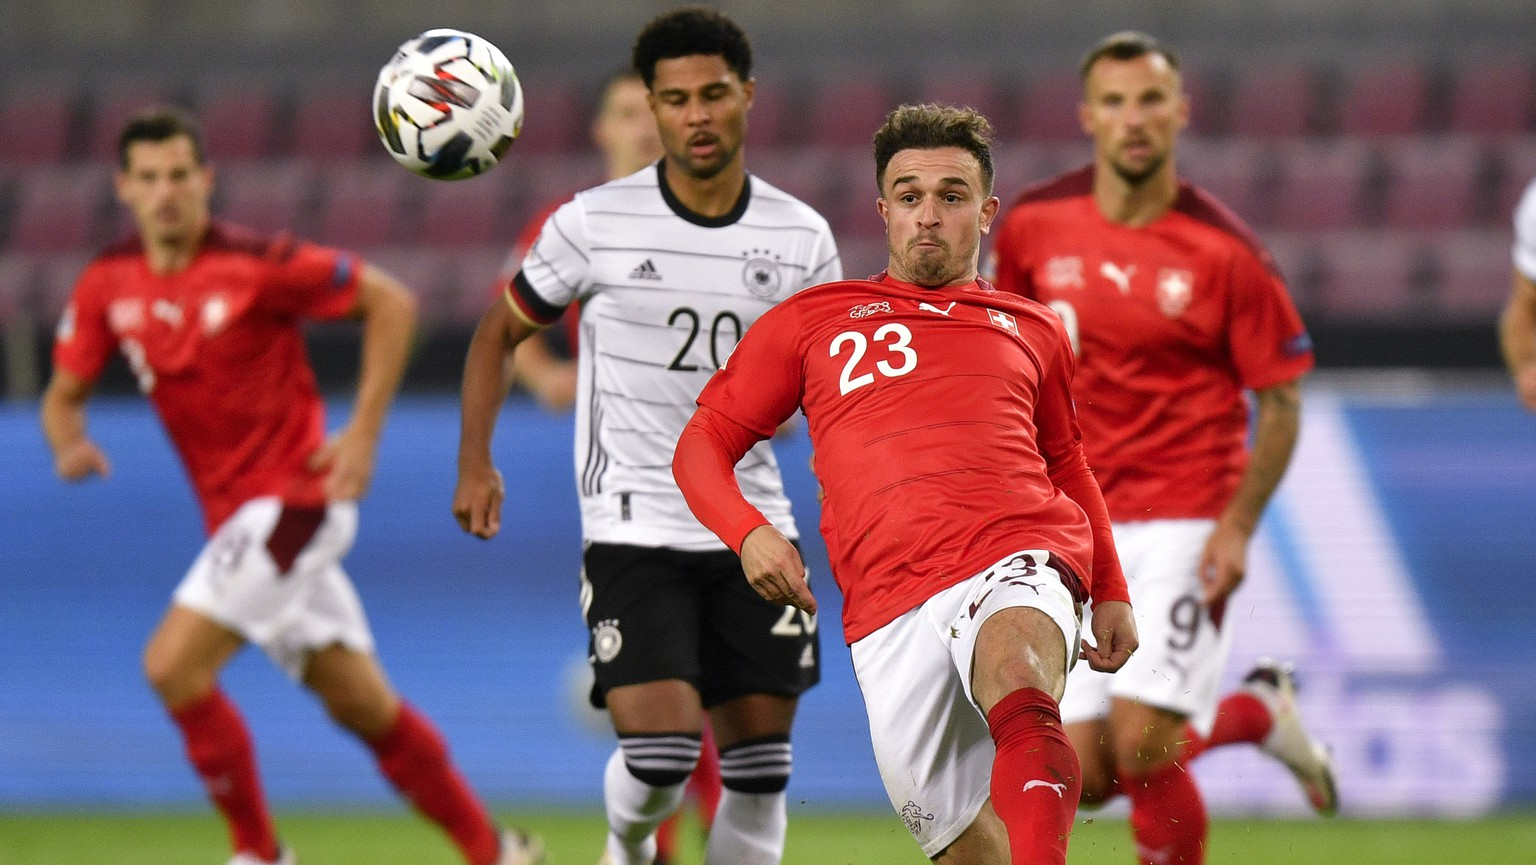 Switzerland's Xherdan Shaqiri kicks the ball away from Germany's Serge Gnabry during the UEFA Nations League soccer match between Germany and Switzerland in Cologne, Germany, Tuesday, Oct. 13, 2020. (AP Photo/Martin Meissner)